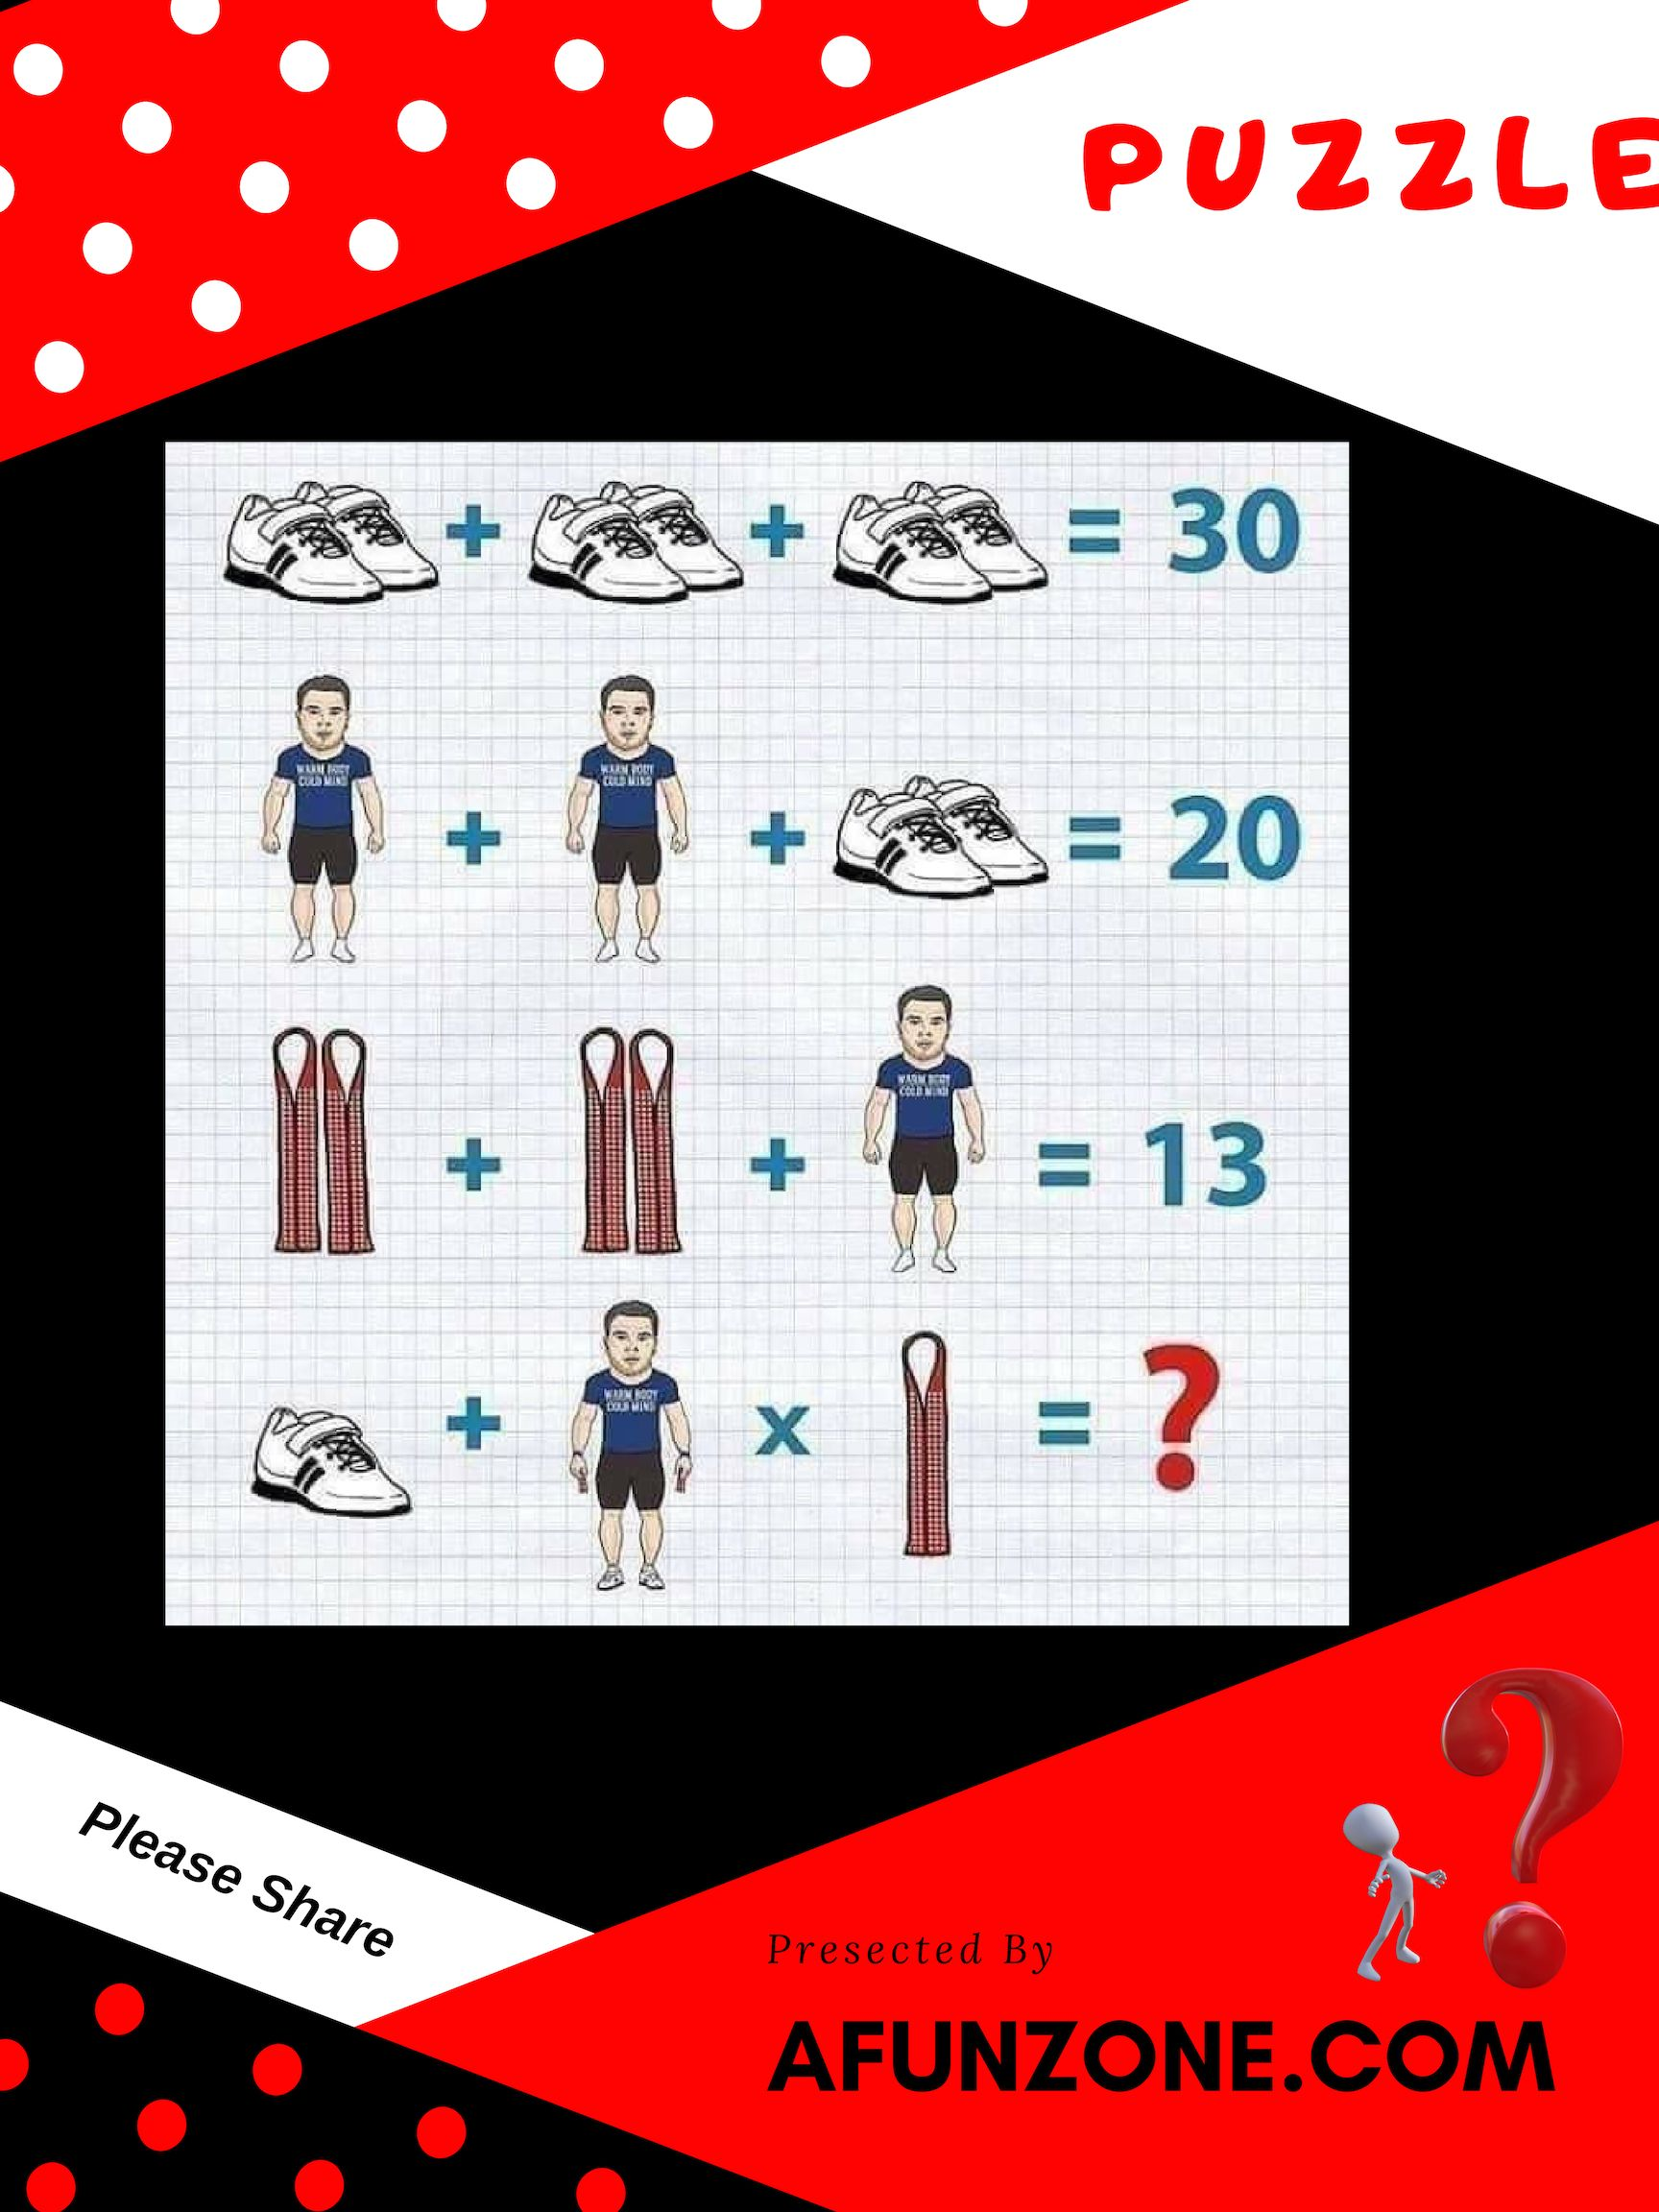 Today S Featured Puzzle Picture Math Problem Maths Puzzles Math Pictures Math Puzzles Brain Teasers